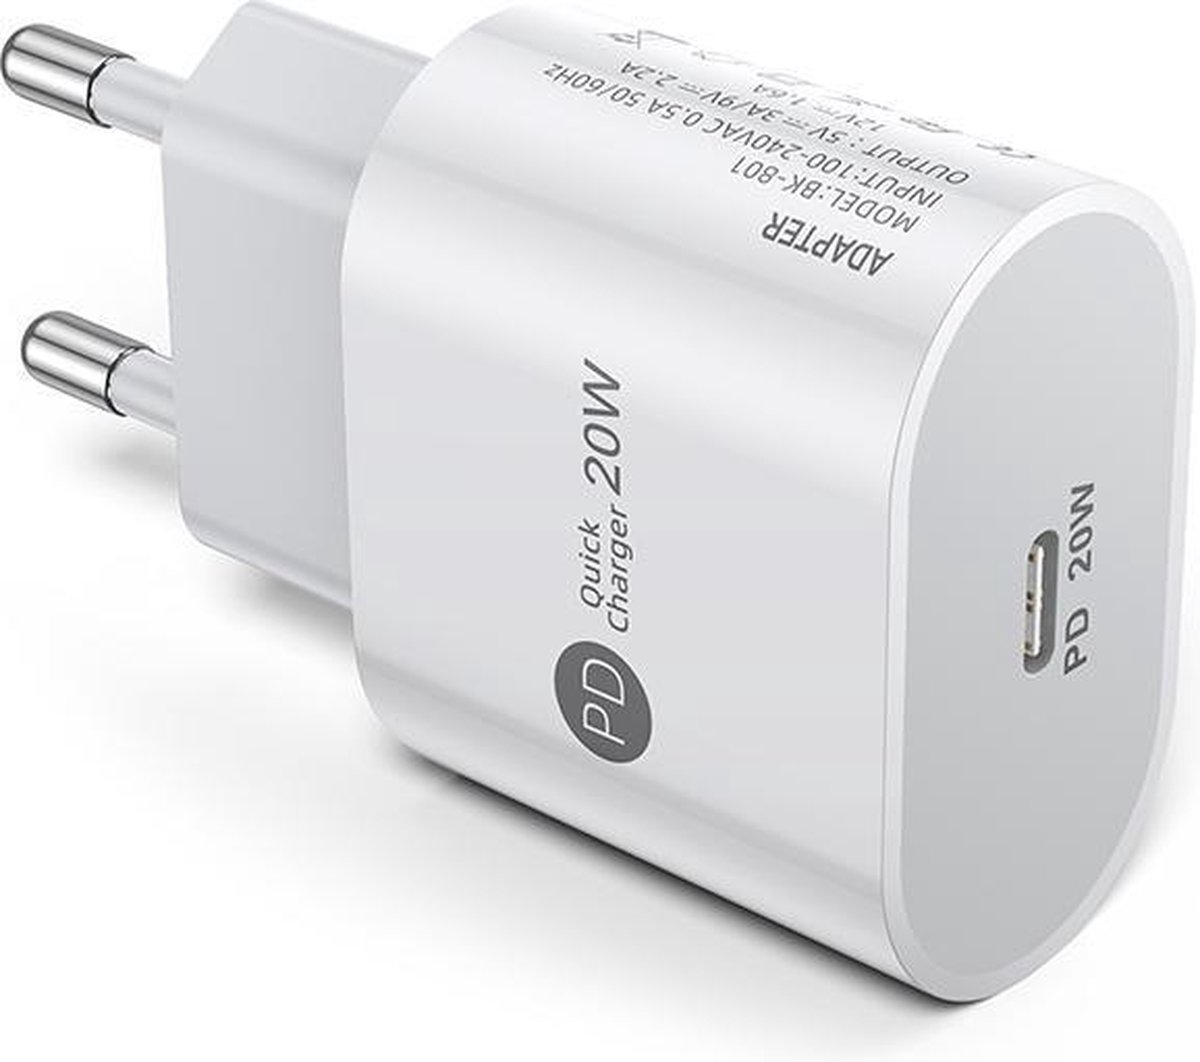 DrPhone PD Lunar - 20W Thuislader- Oplader 5V 3A / 9V 2.2A/12V 1.6A - voor o.a iPhone 12/ 12 Pro / 12 MAX /iPad/ S21/P40 etc - Wit